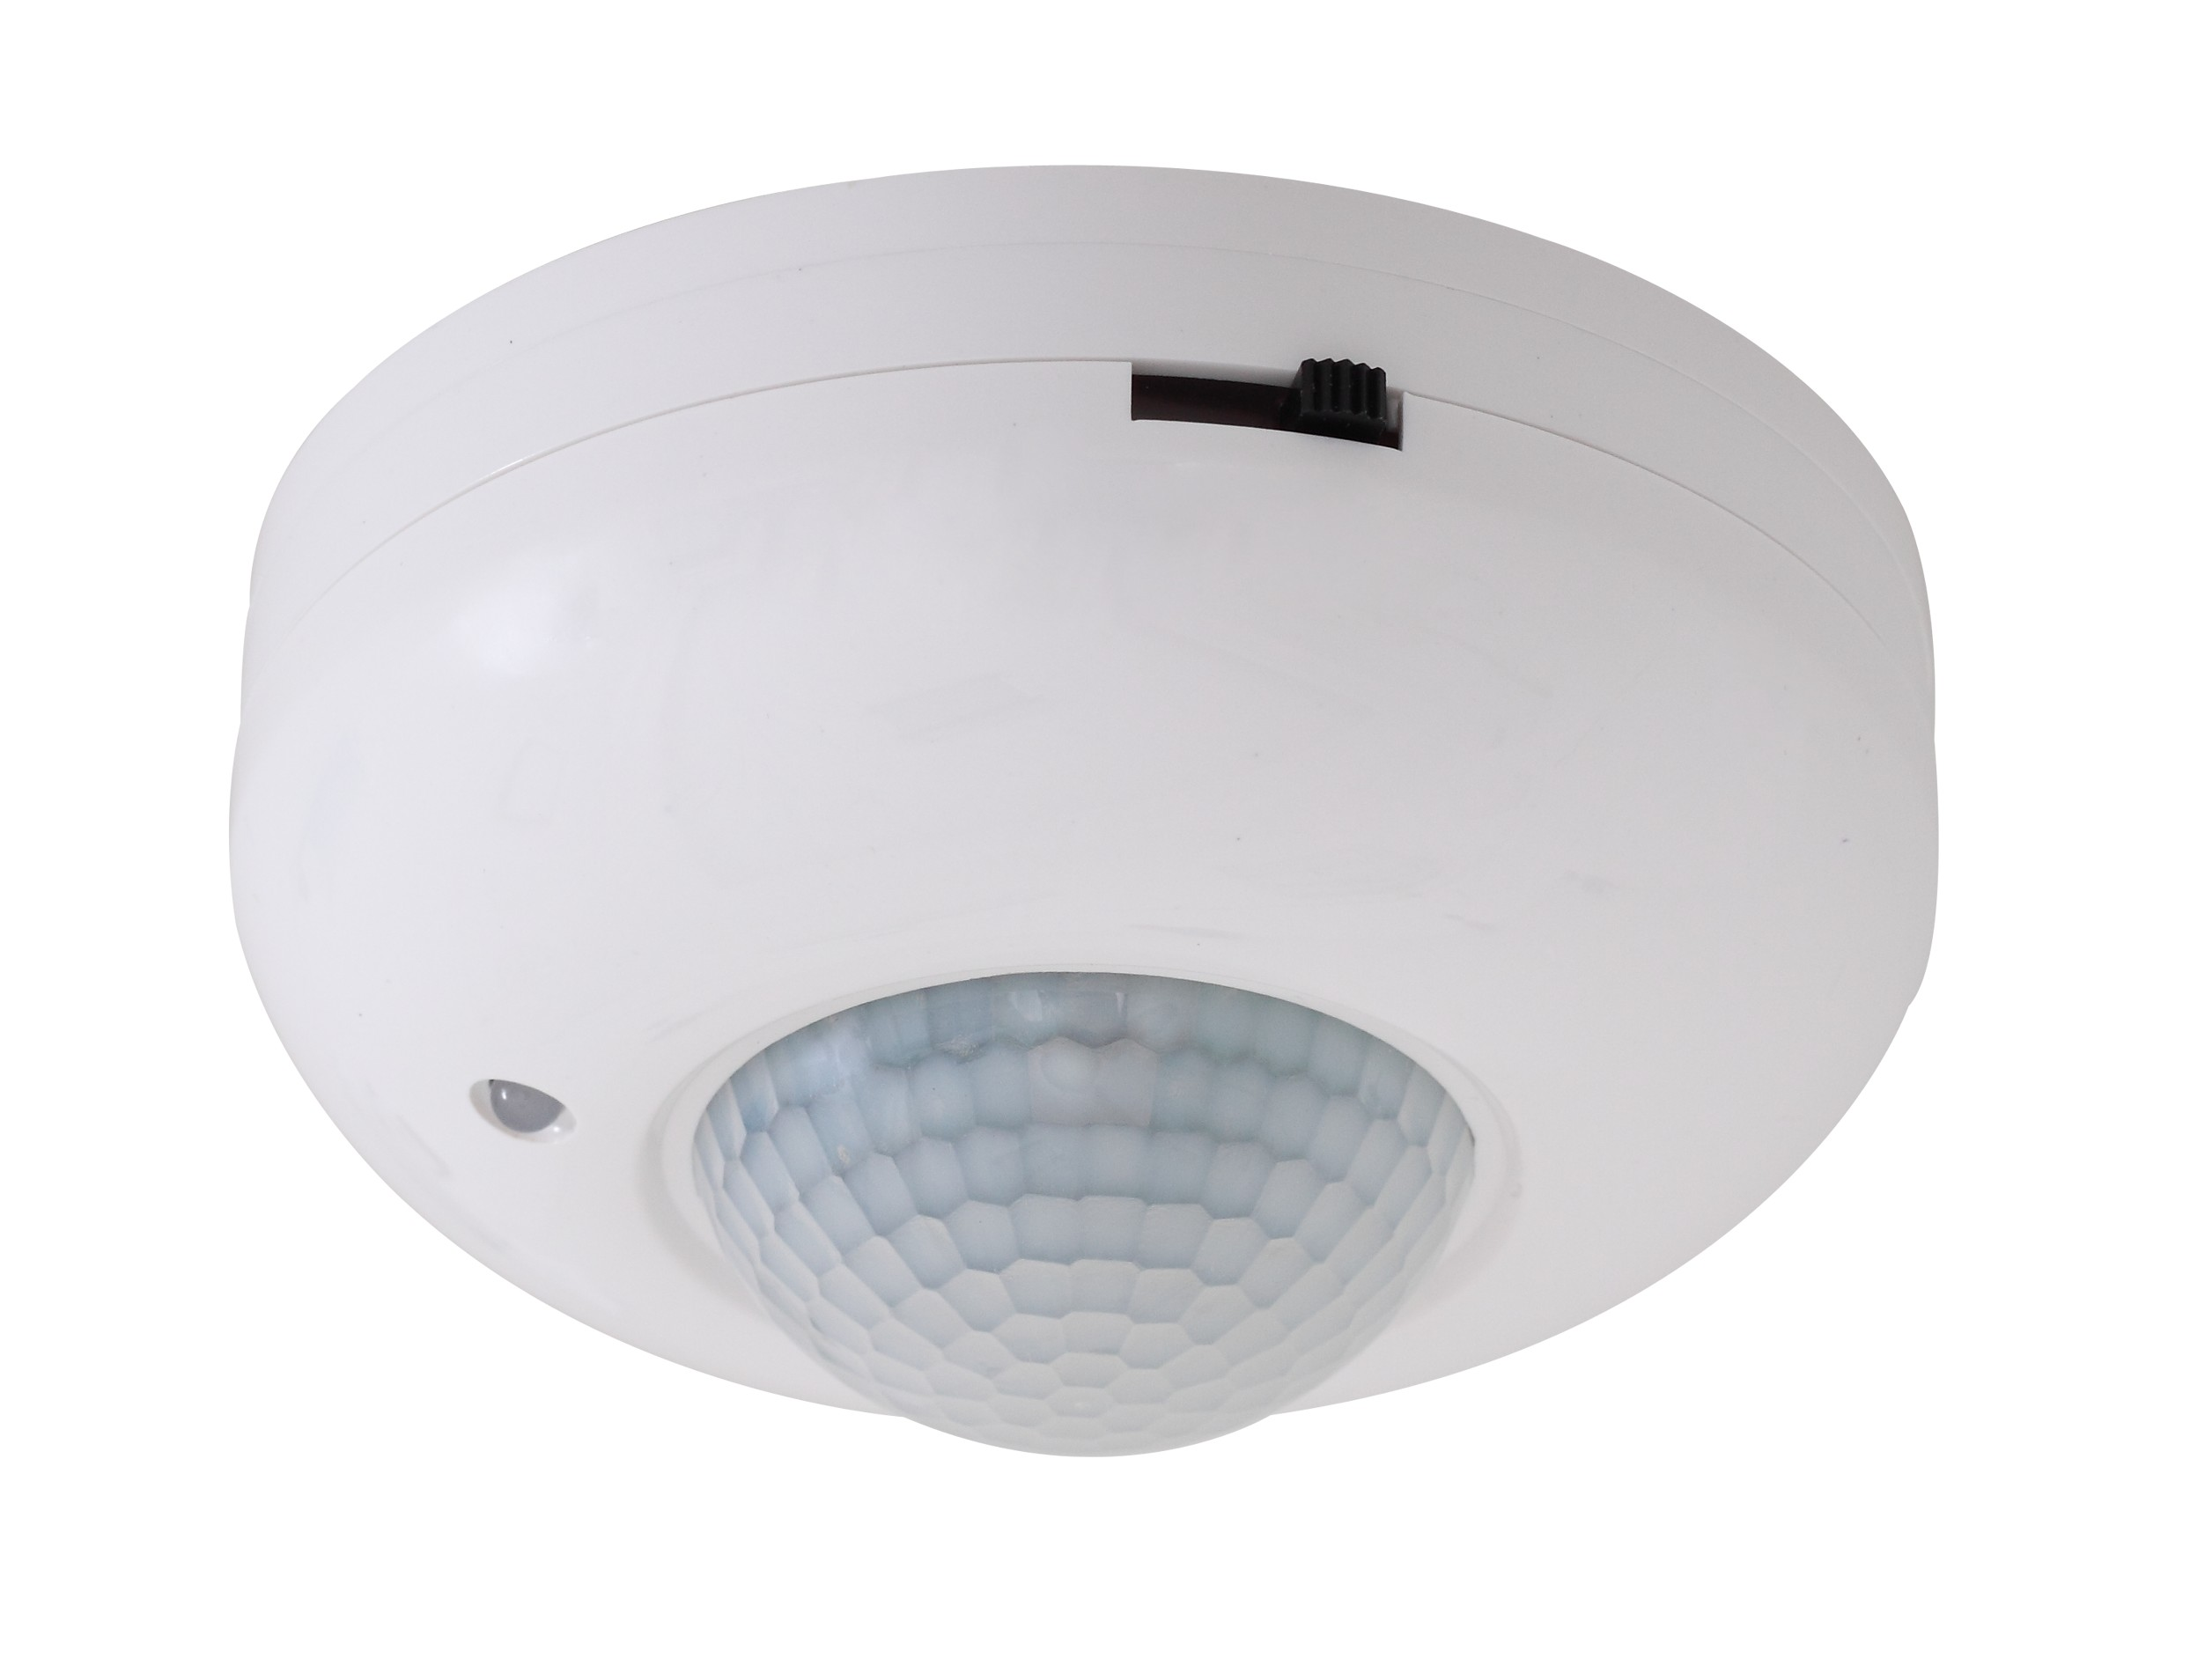 motion-sensor-indoor